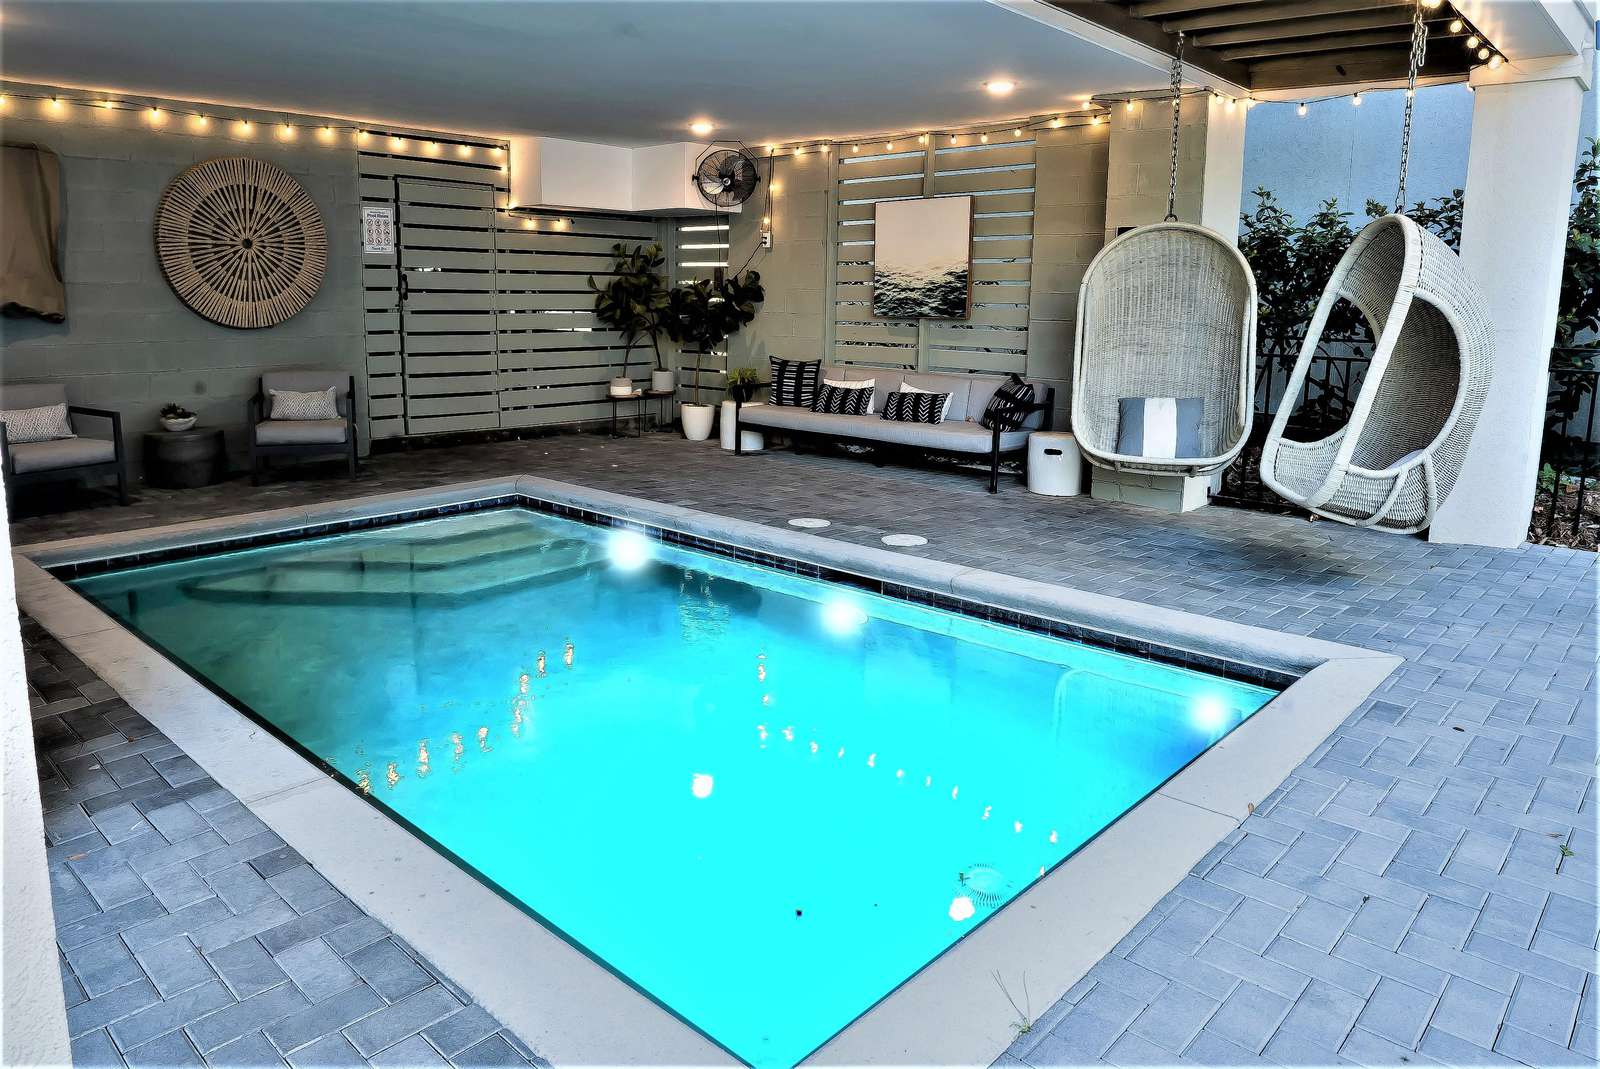 Perfect Vacation! Full Size Pool with Plenty of Room for the Family